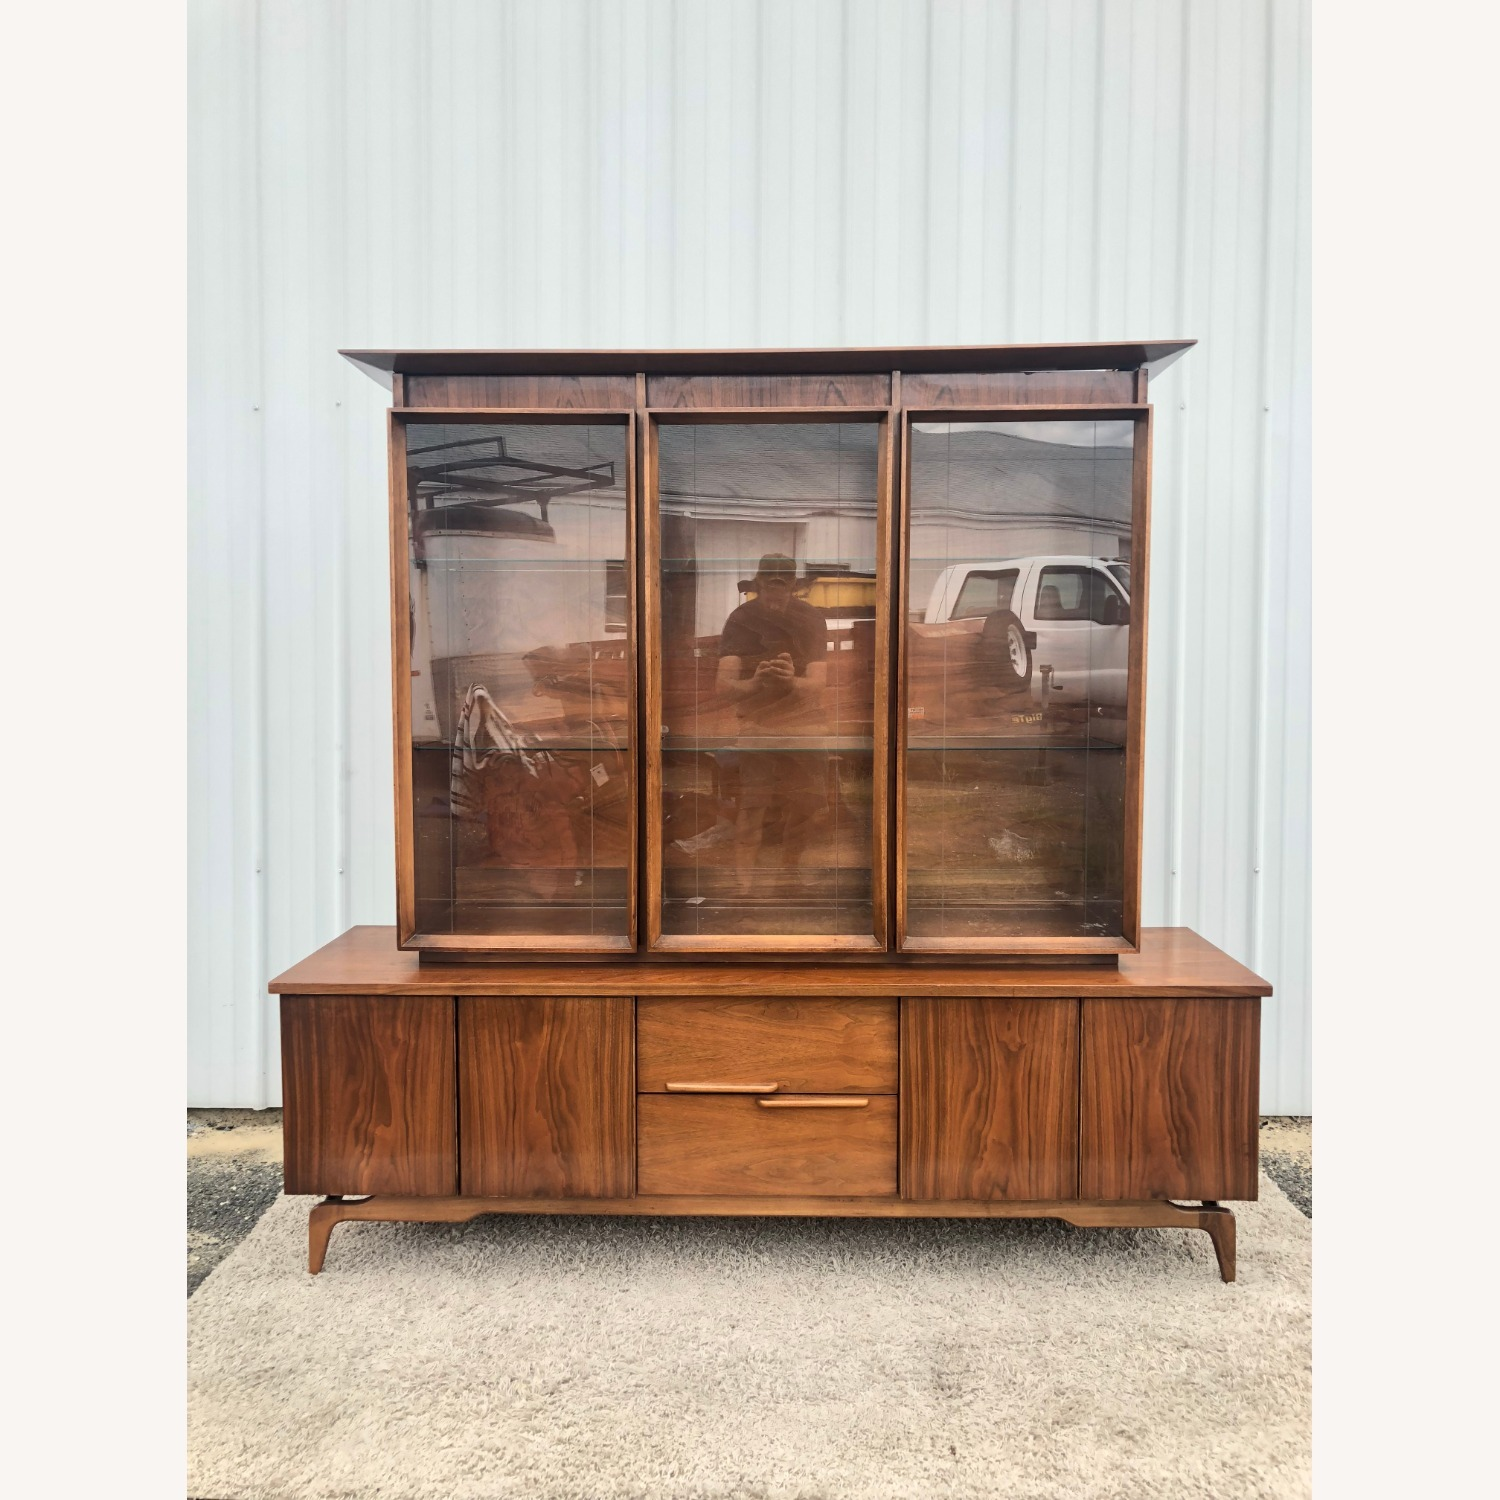 Mid Century China Cabinet with Glass Shelves - image-12